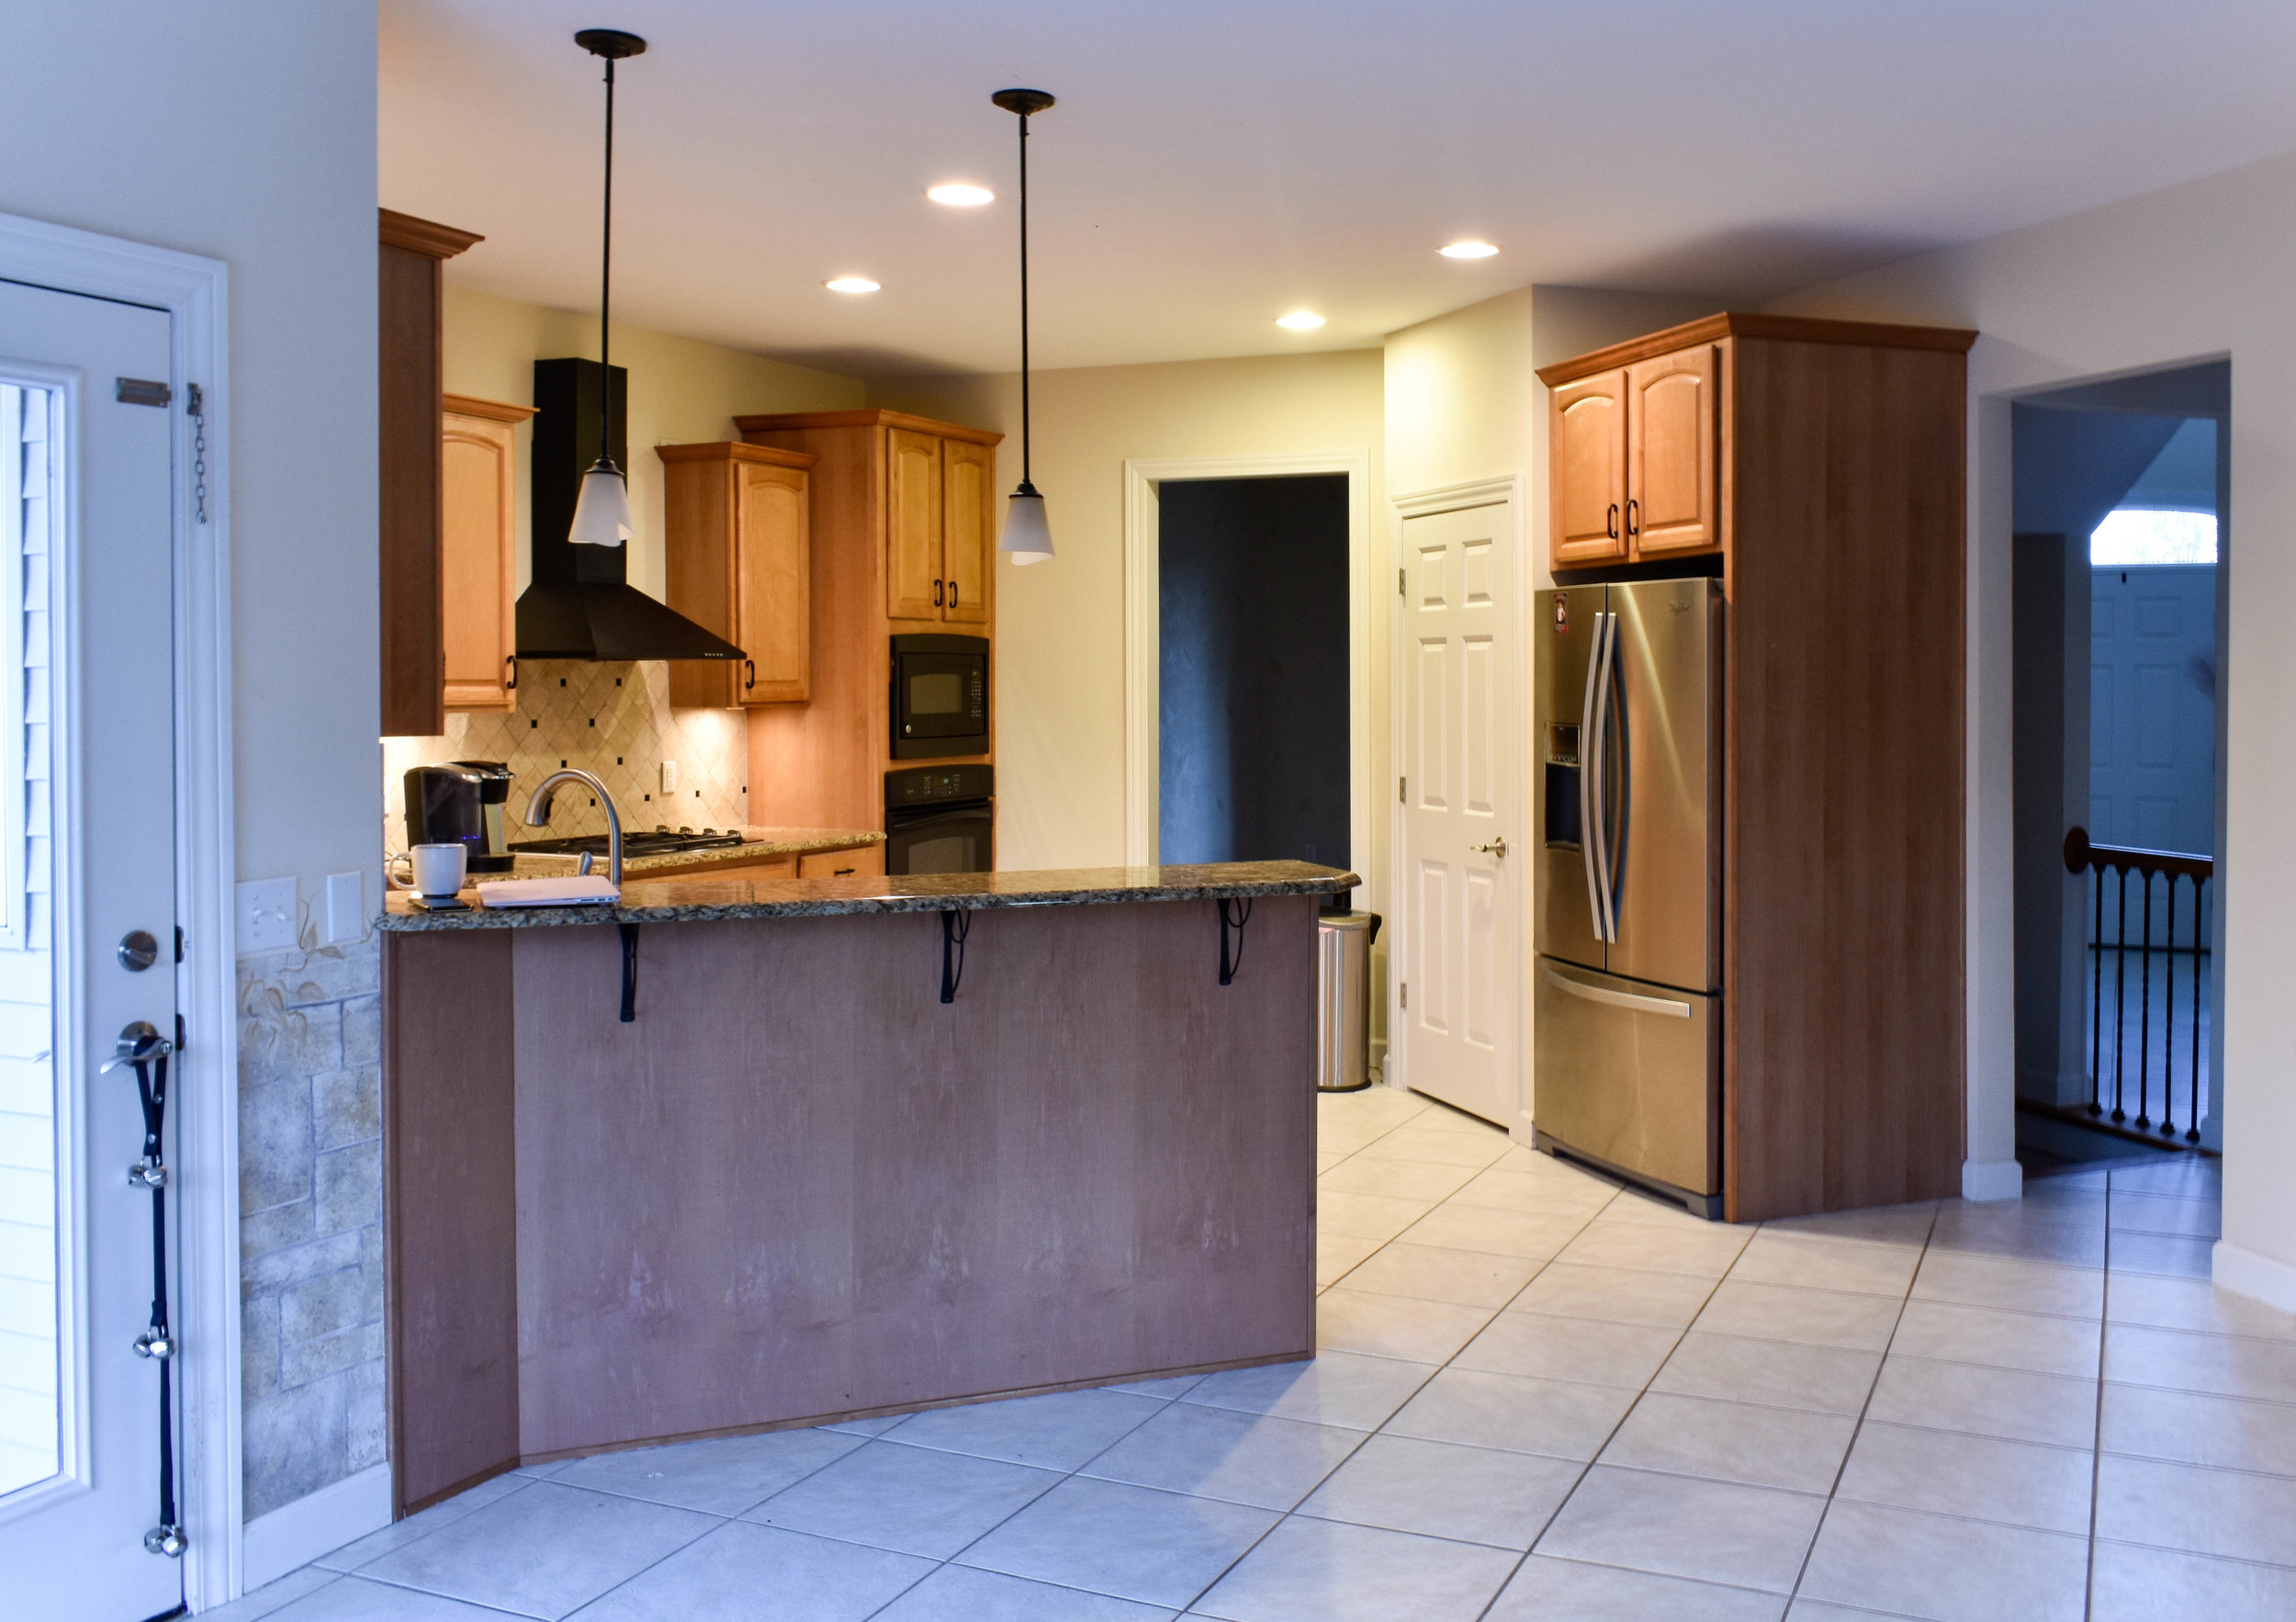 BEFORE-A lack of counter space and lighting makes this kitchen a perfect candidate for a refresher